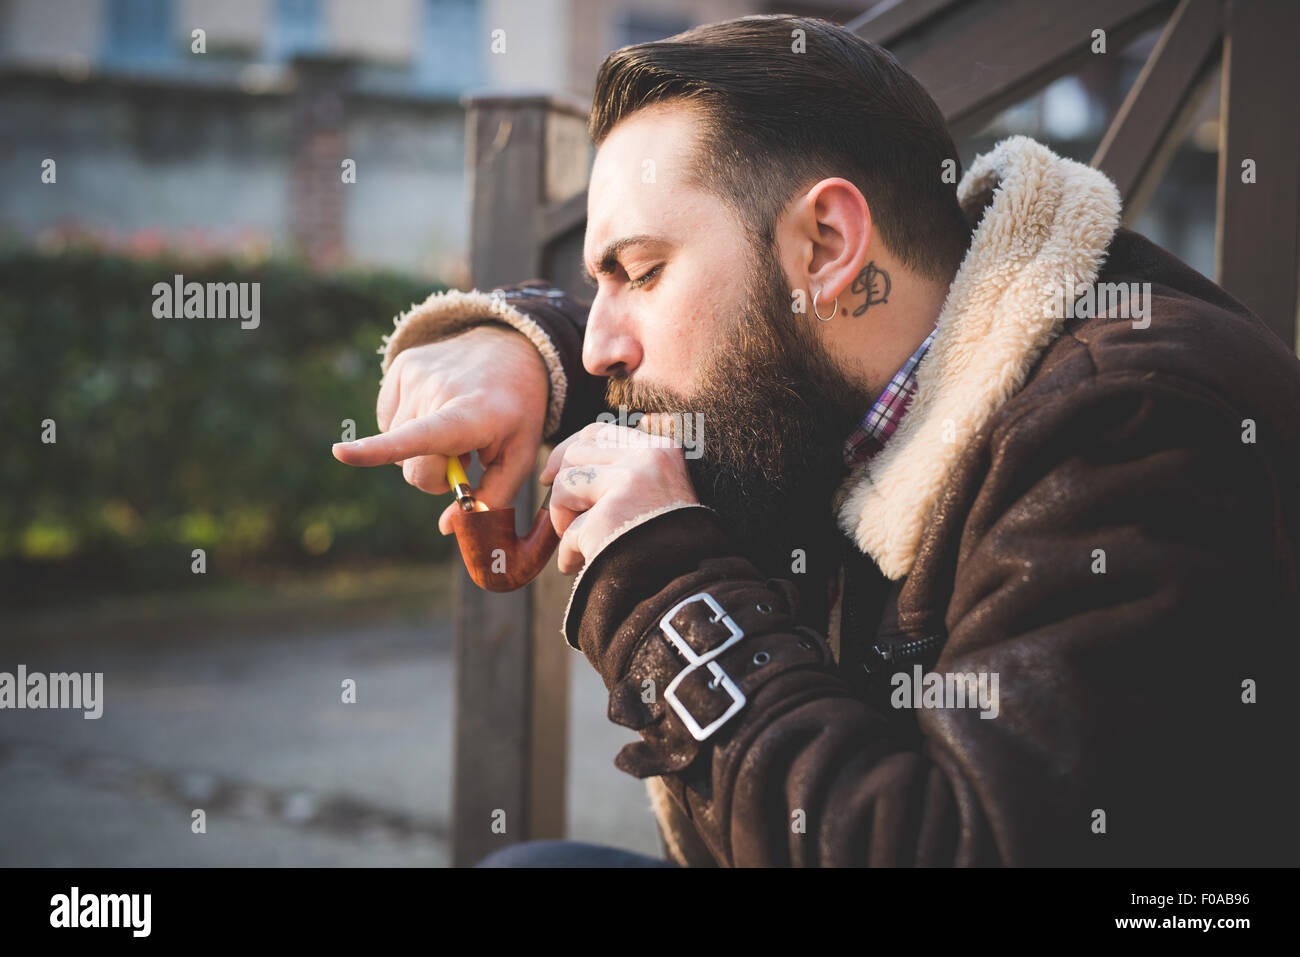 Young bearded man smoking pipe on steps - Stock Image